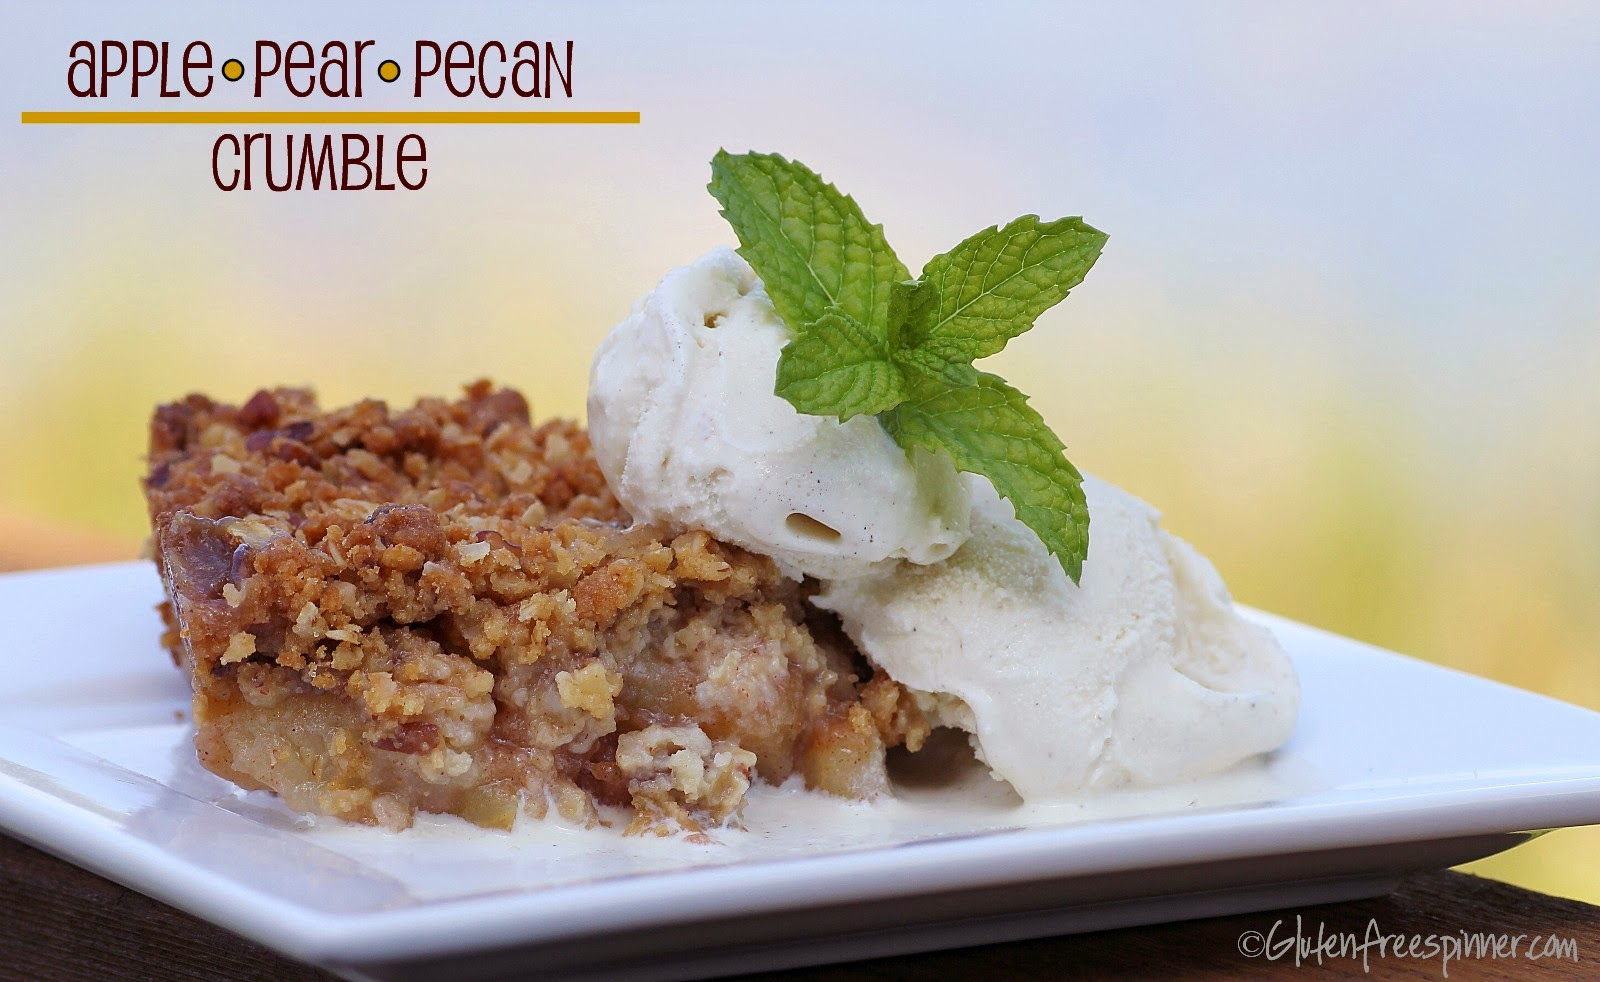 Apple Pear Pecan Crumble